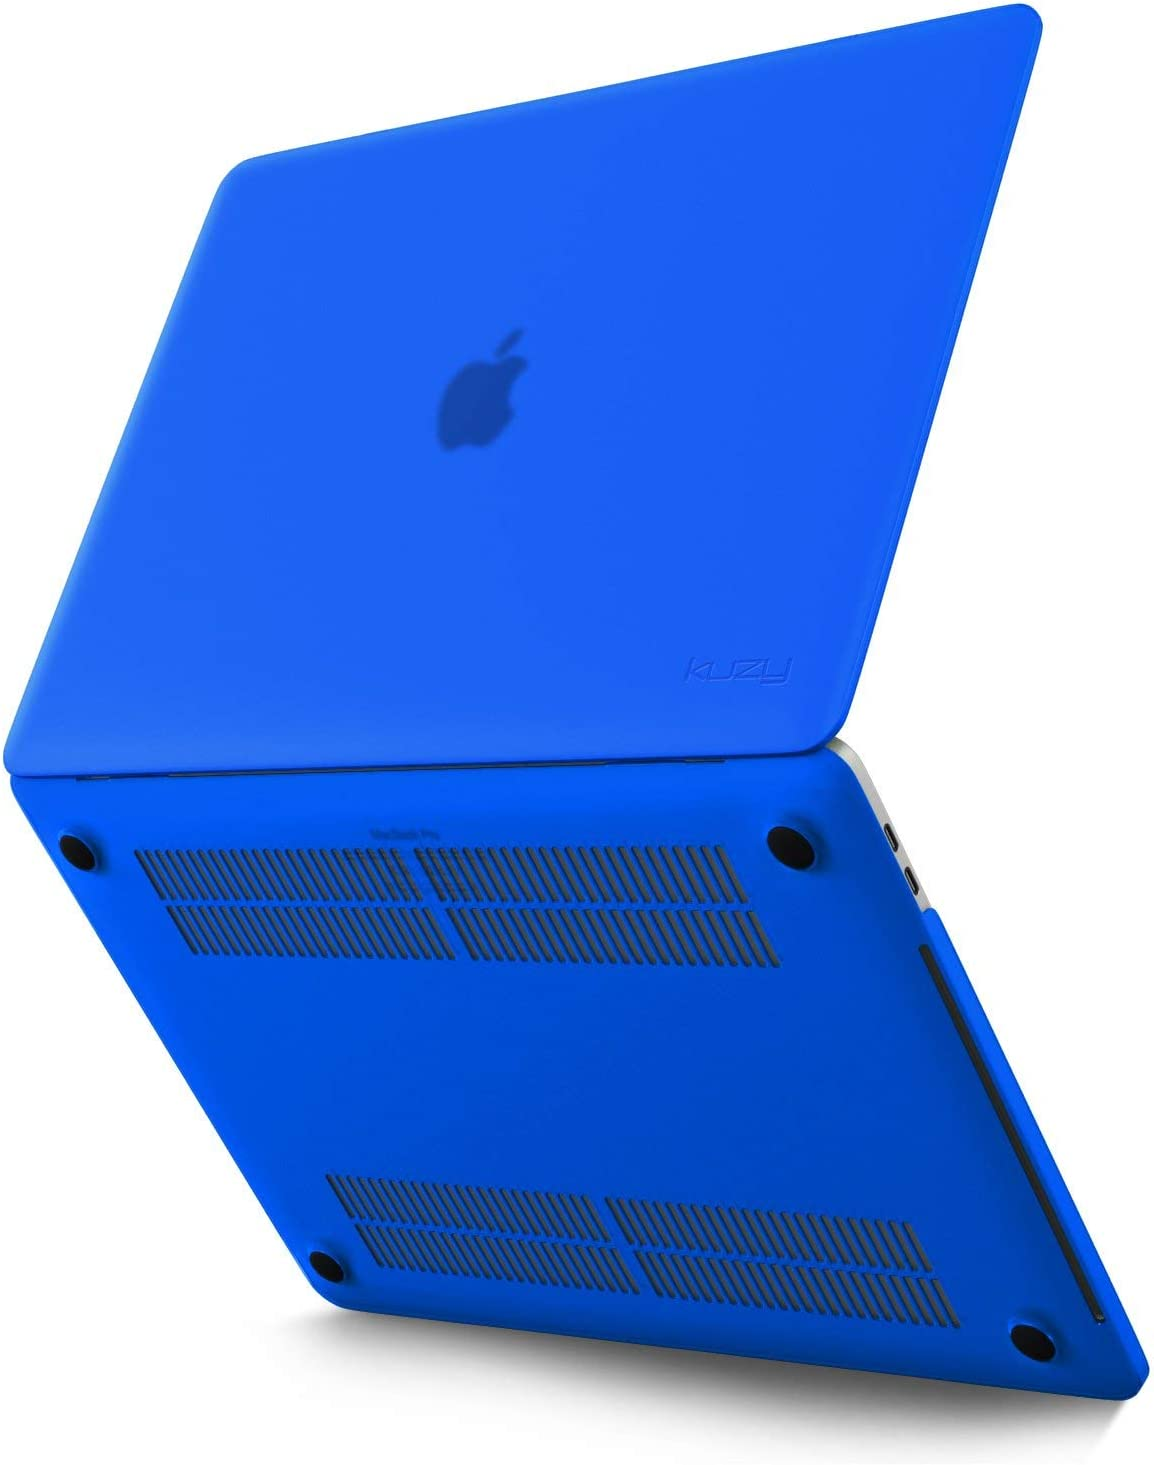 Plastic Hard Shell Cover for New 13 inch MacBook Pro Case with Touch Bar Soft Touch MacBook Pro 13 inch Case 2019 2018 2017 2016 Release A2159 A1989 A1706 A1708 Aqua Kuzy